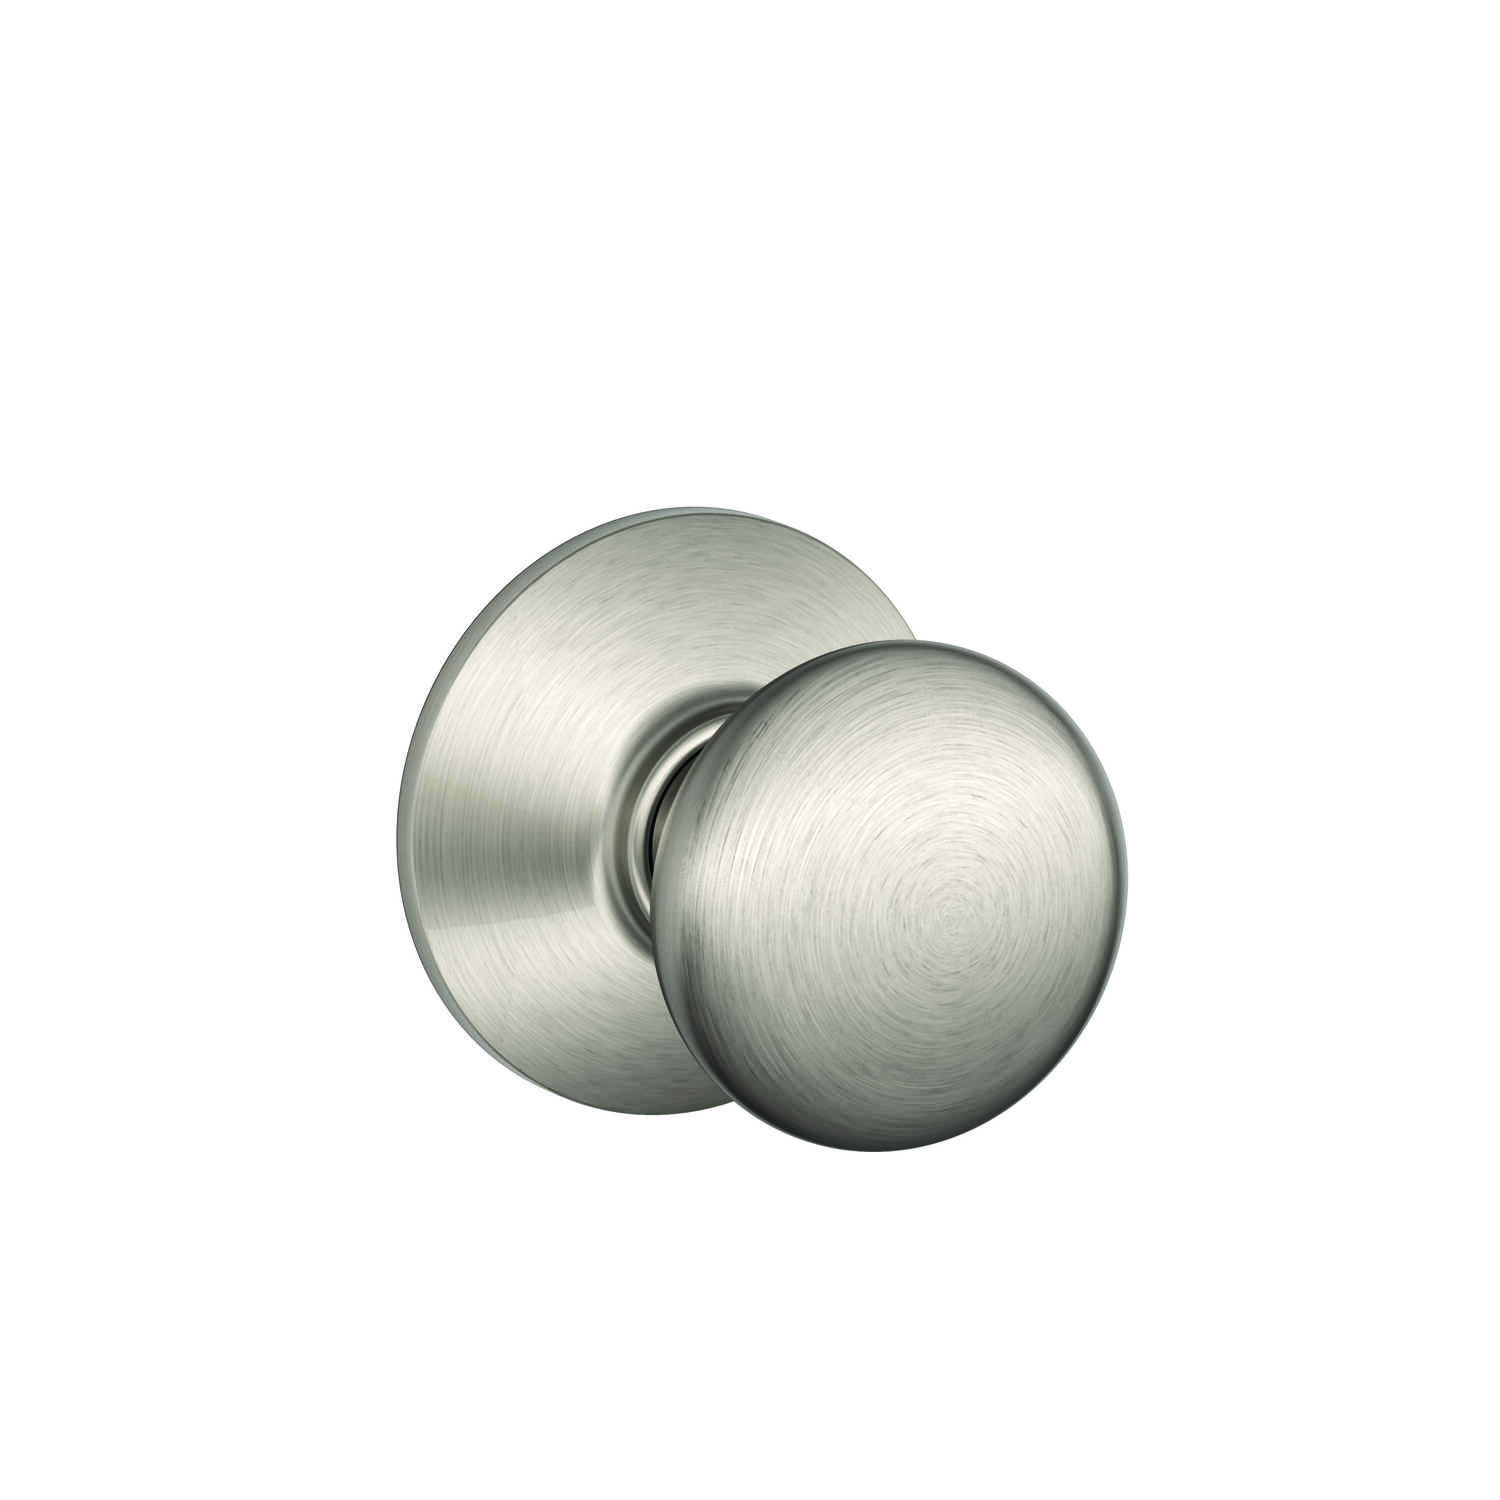 Schlage  Plymouth  Satin Nickel  Brass  Passage Door Knob  2 Grade Right or Left Handed